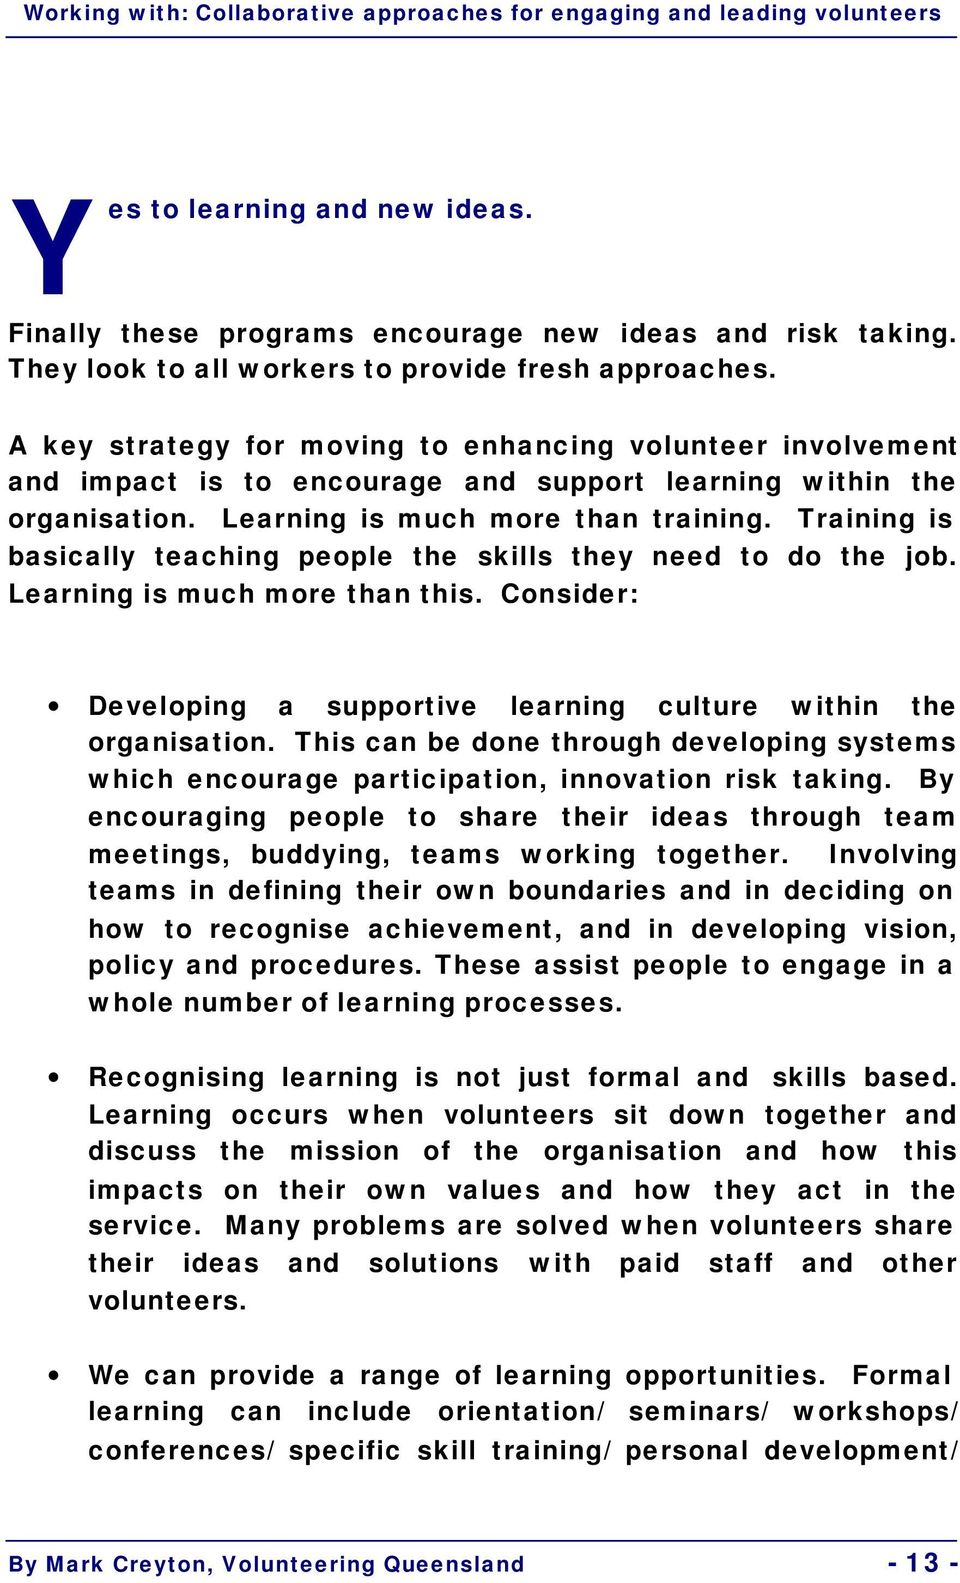 Training is basically teaching people the skills they need to do the job. Learning is much more than this. Consider: Developing a supportive learning culture within the organisation.